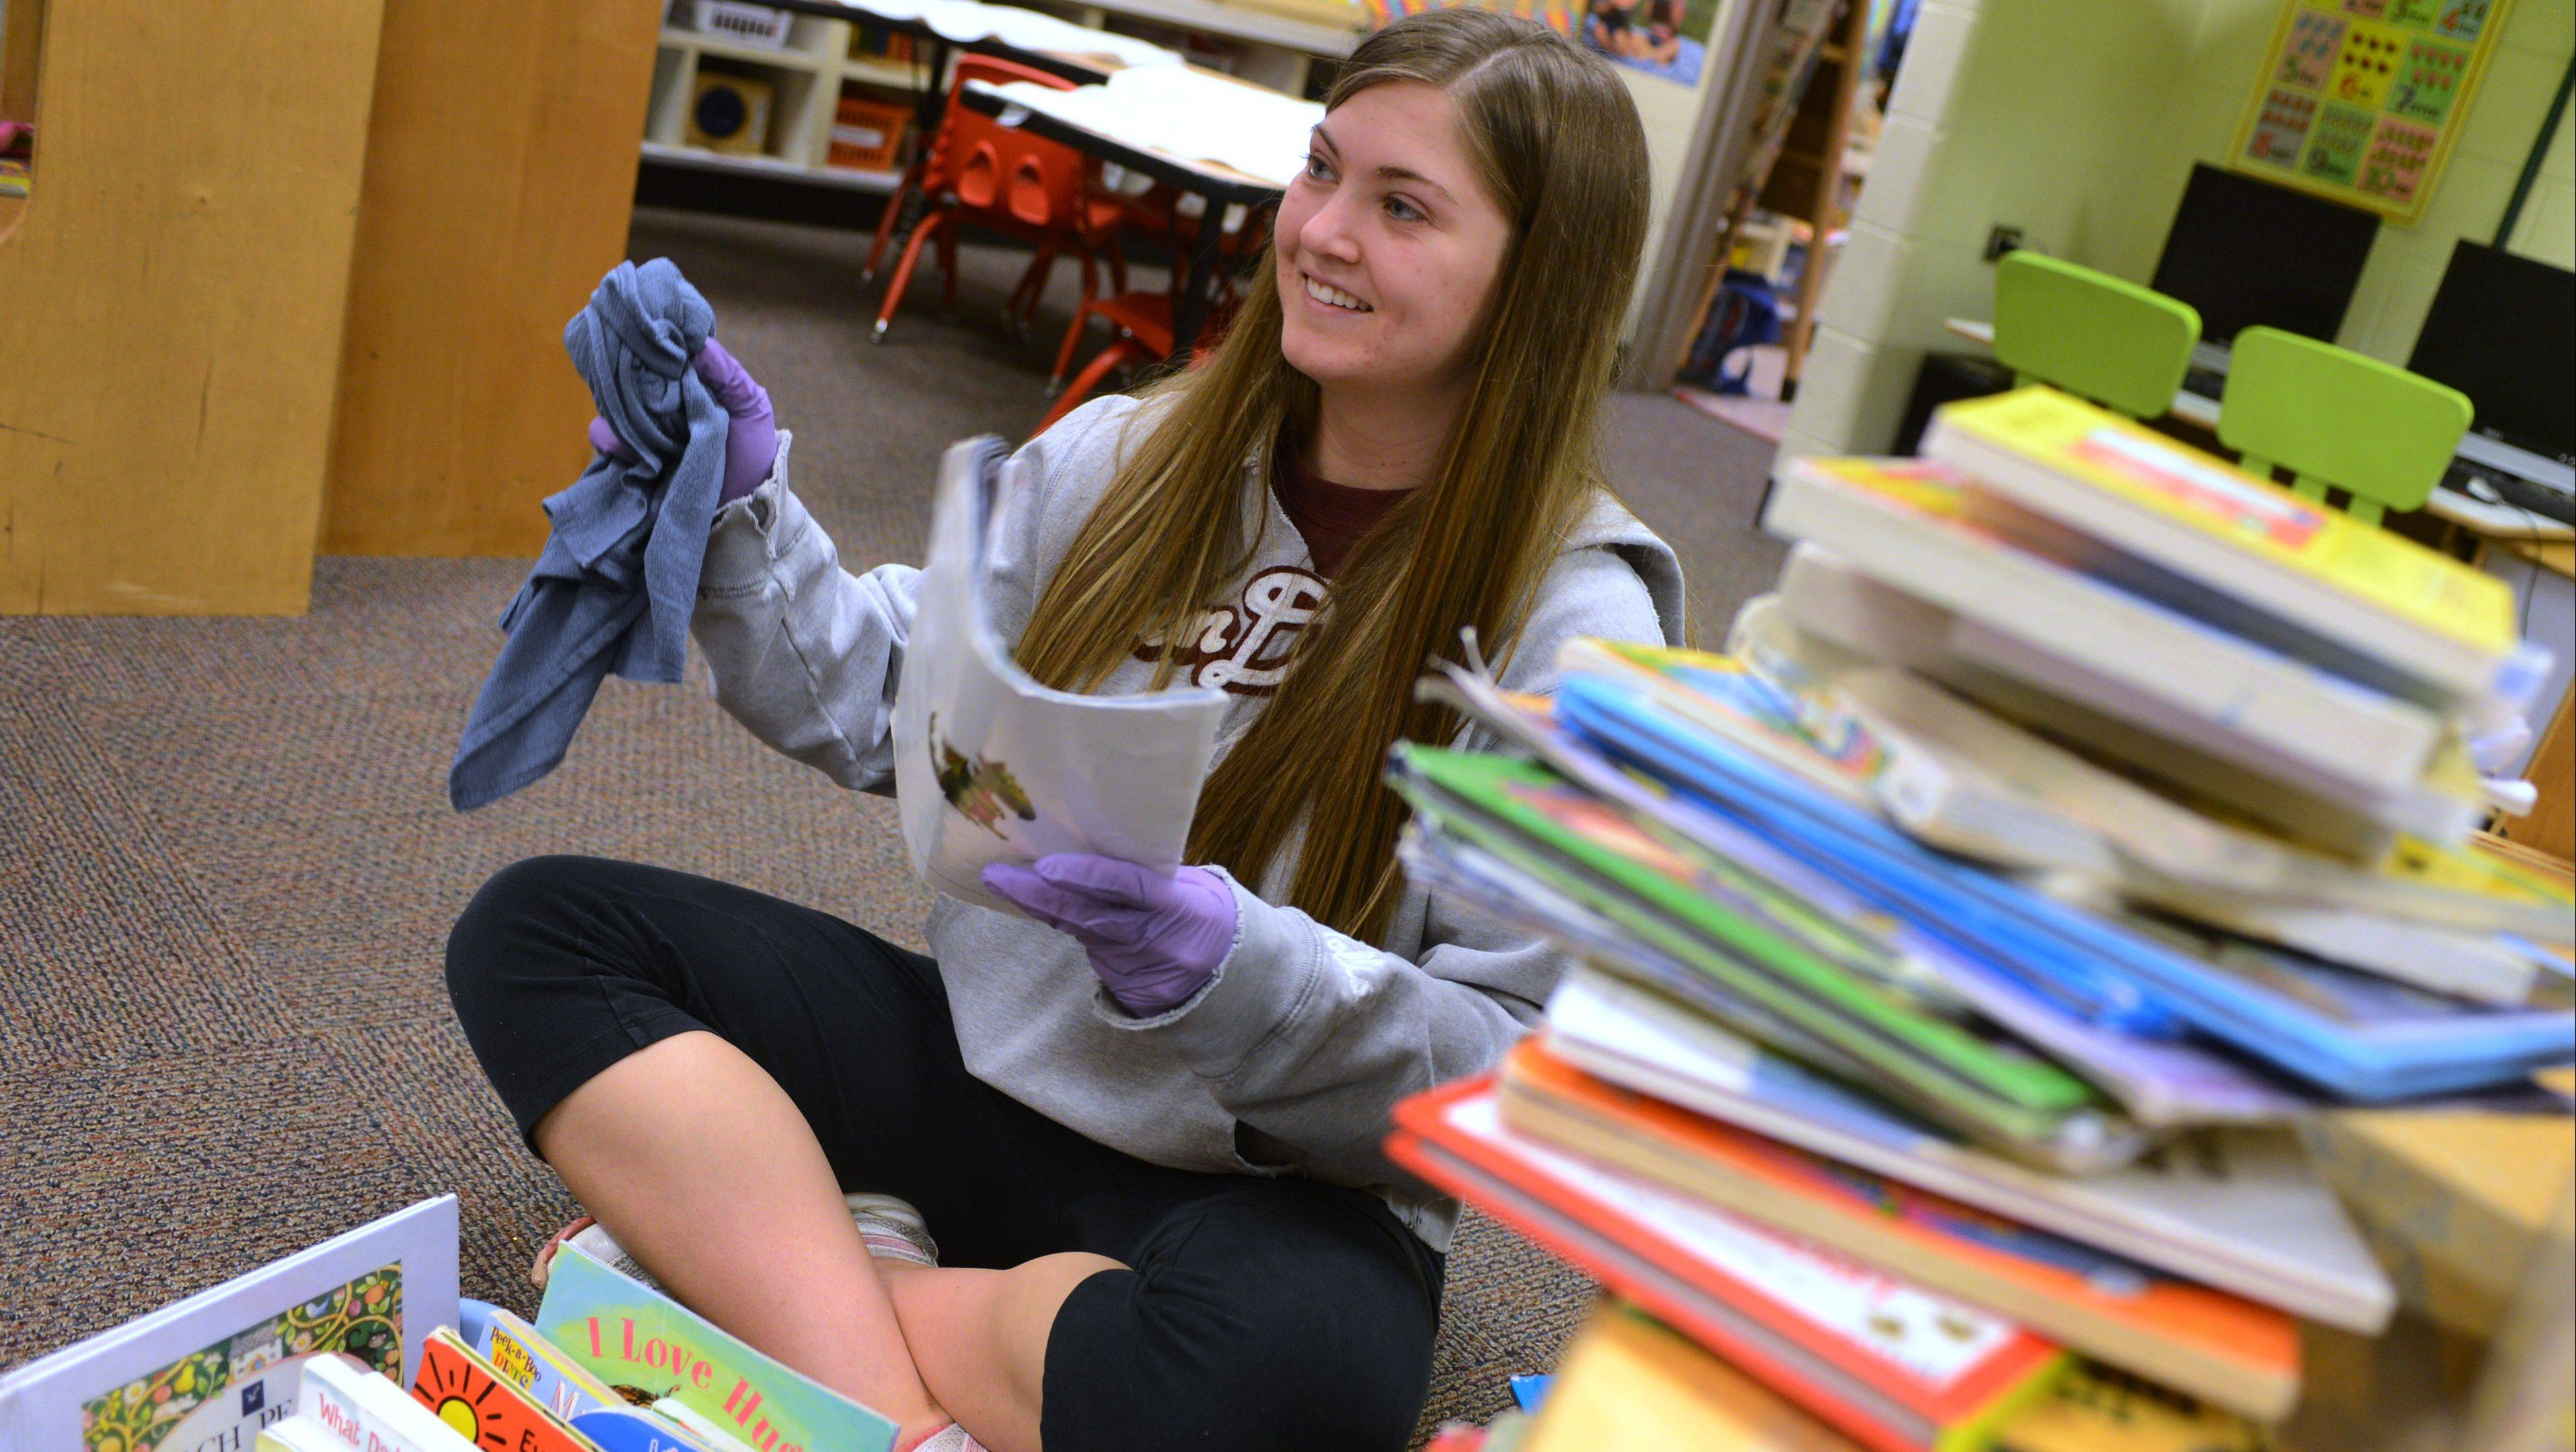 Antioch resident Katie Graziano wipes down books in the College of Lake County Children's Learning Center Saturday.